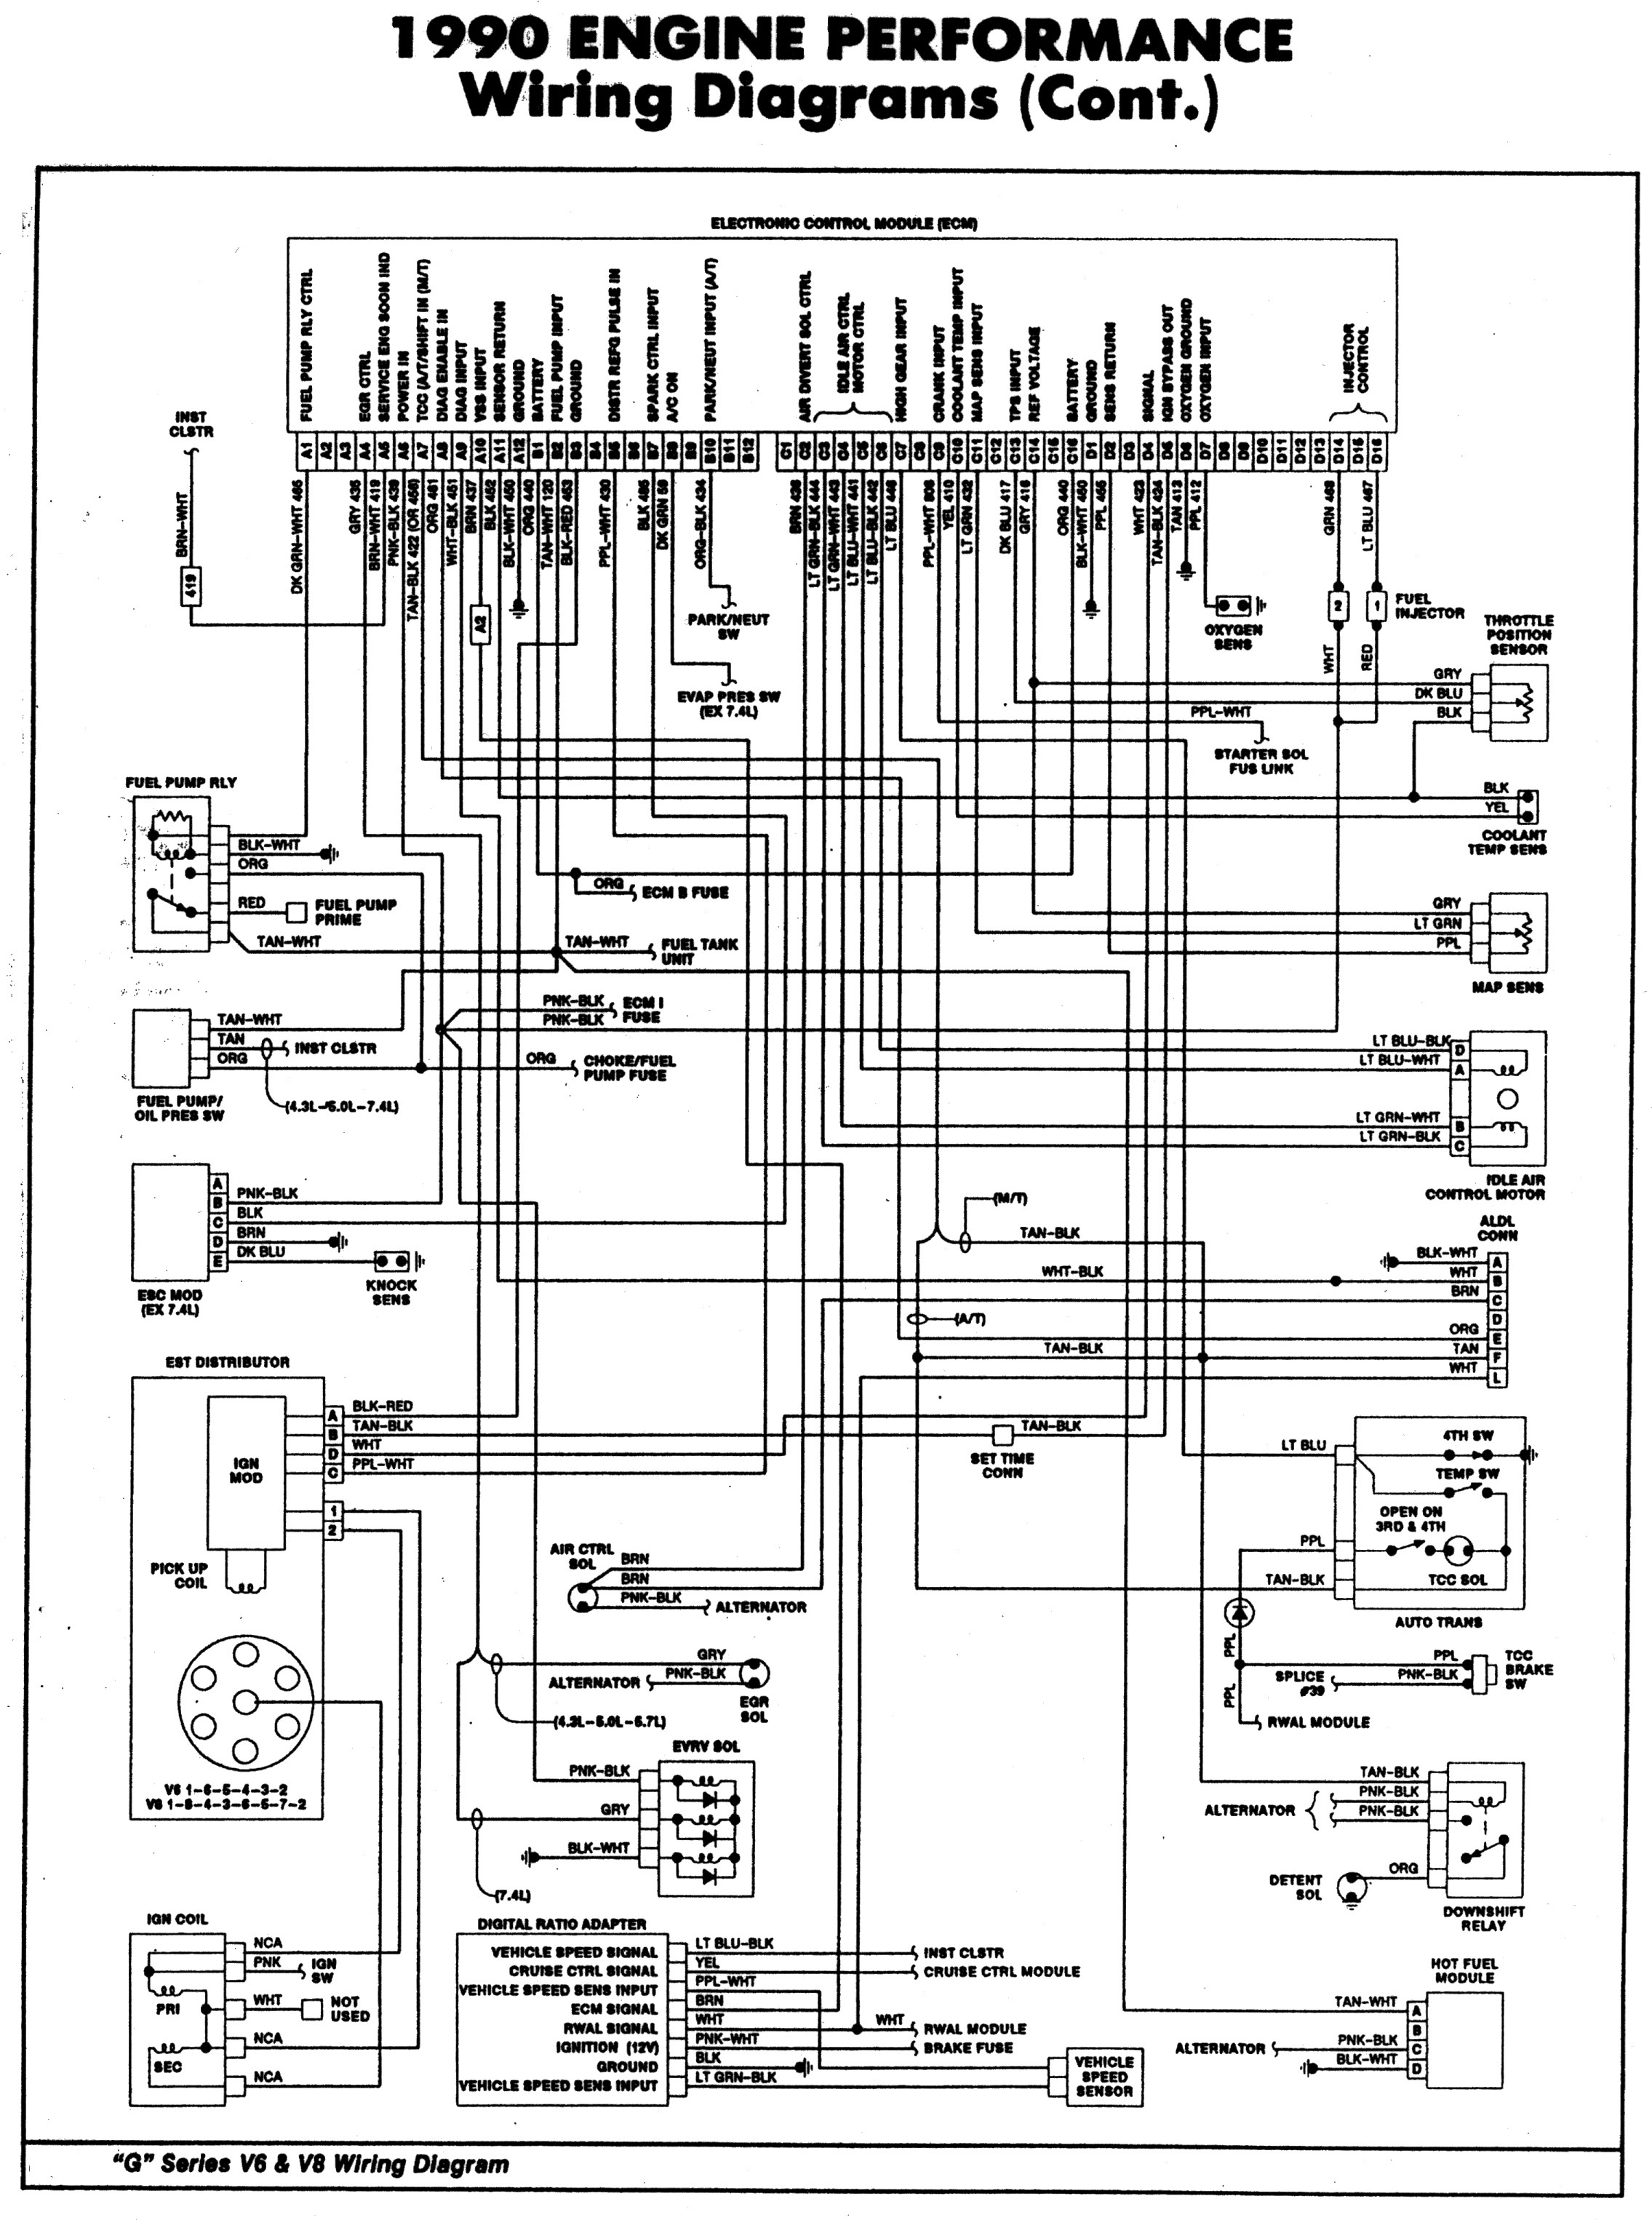 Chevy 350 Tbi Engine Diagram : chevy, engine, diagram, George